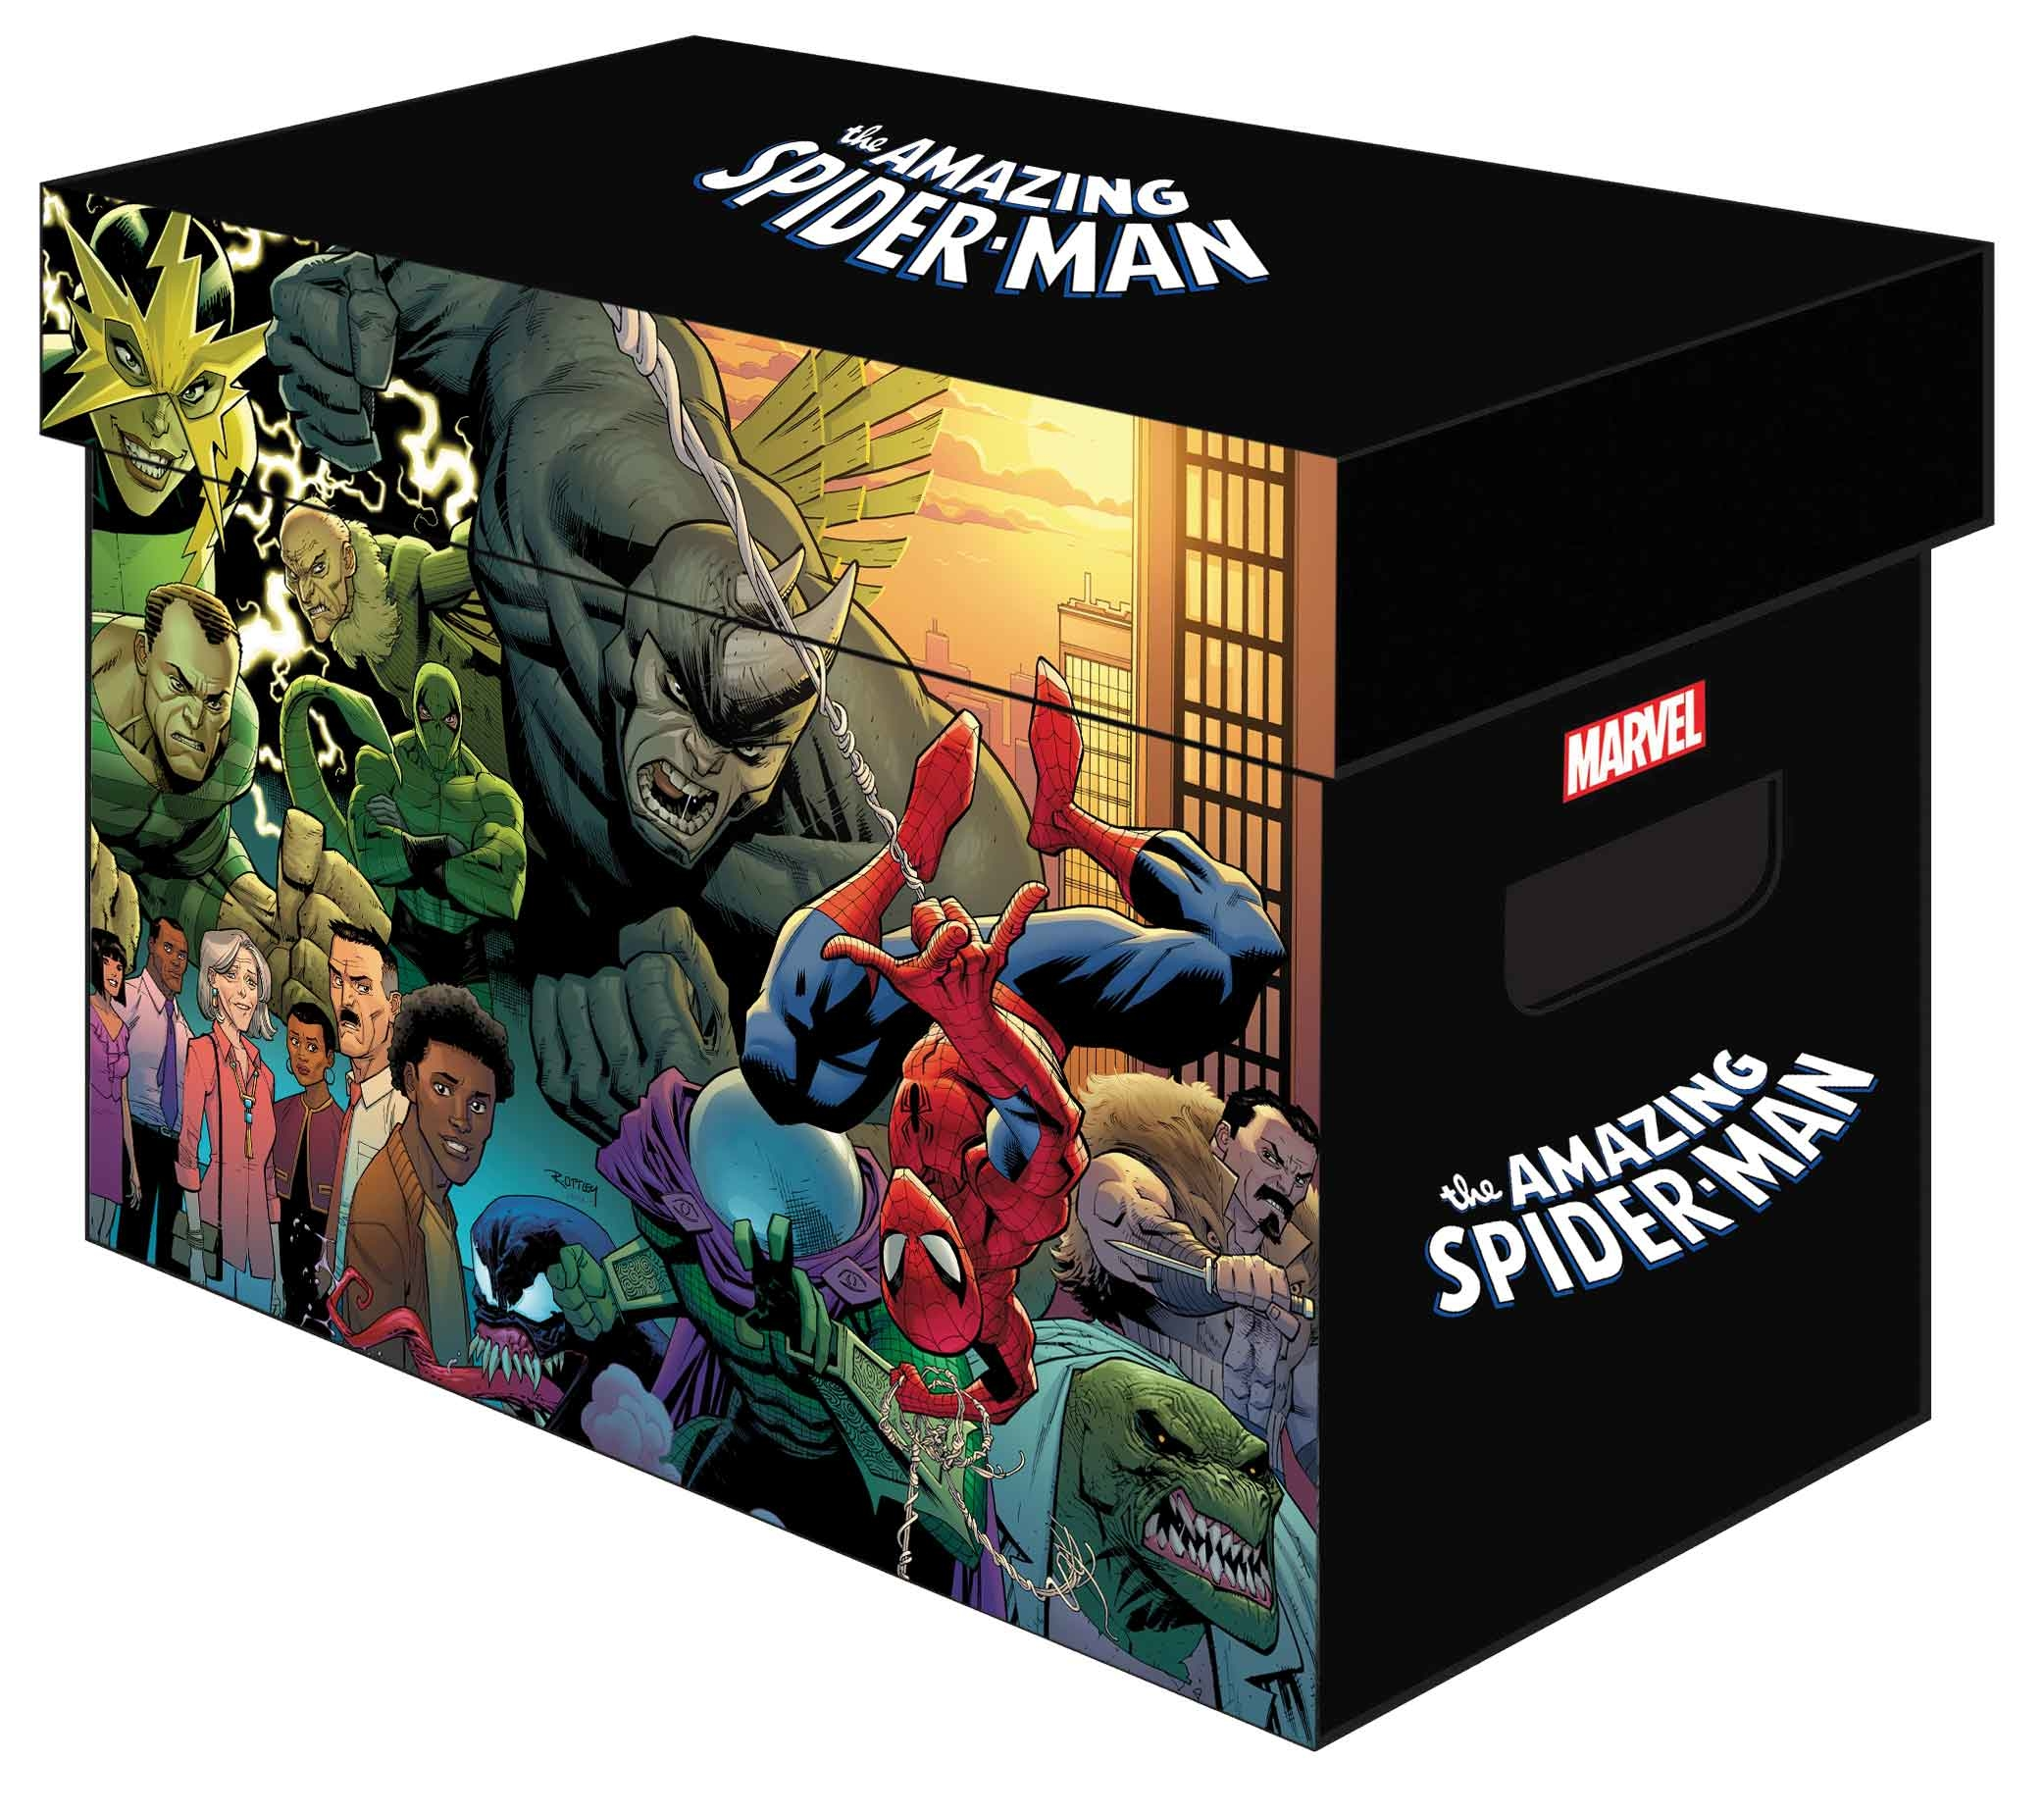 MARVEL GRAPHIC COMIC BOXES AMAZING SPIDER-MAN (BUNDLE OF 5)